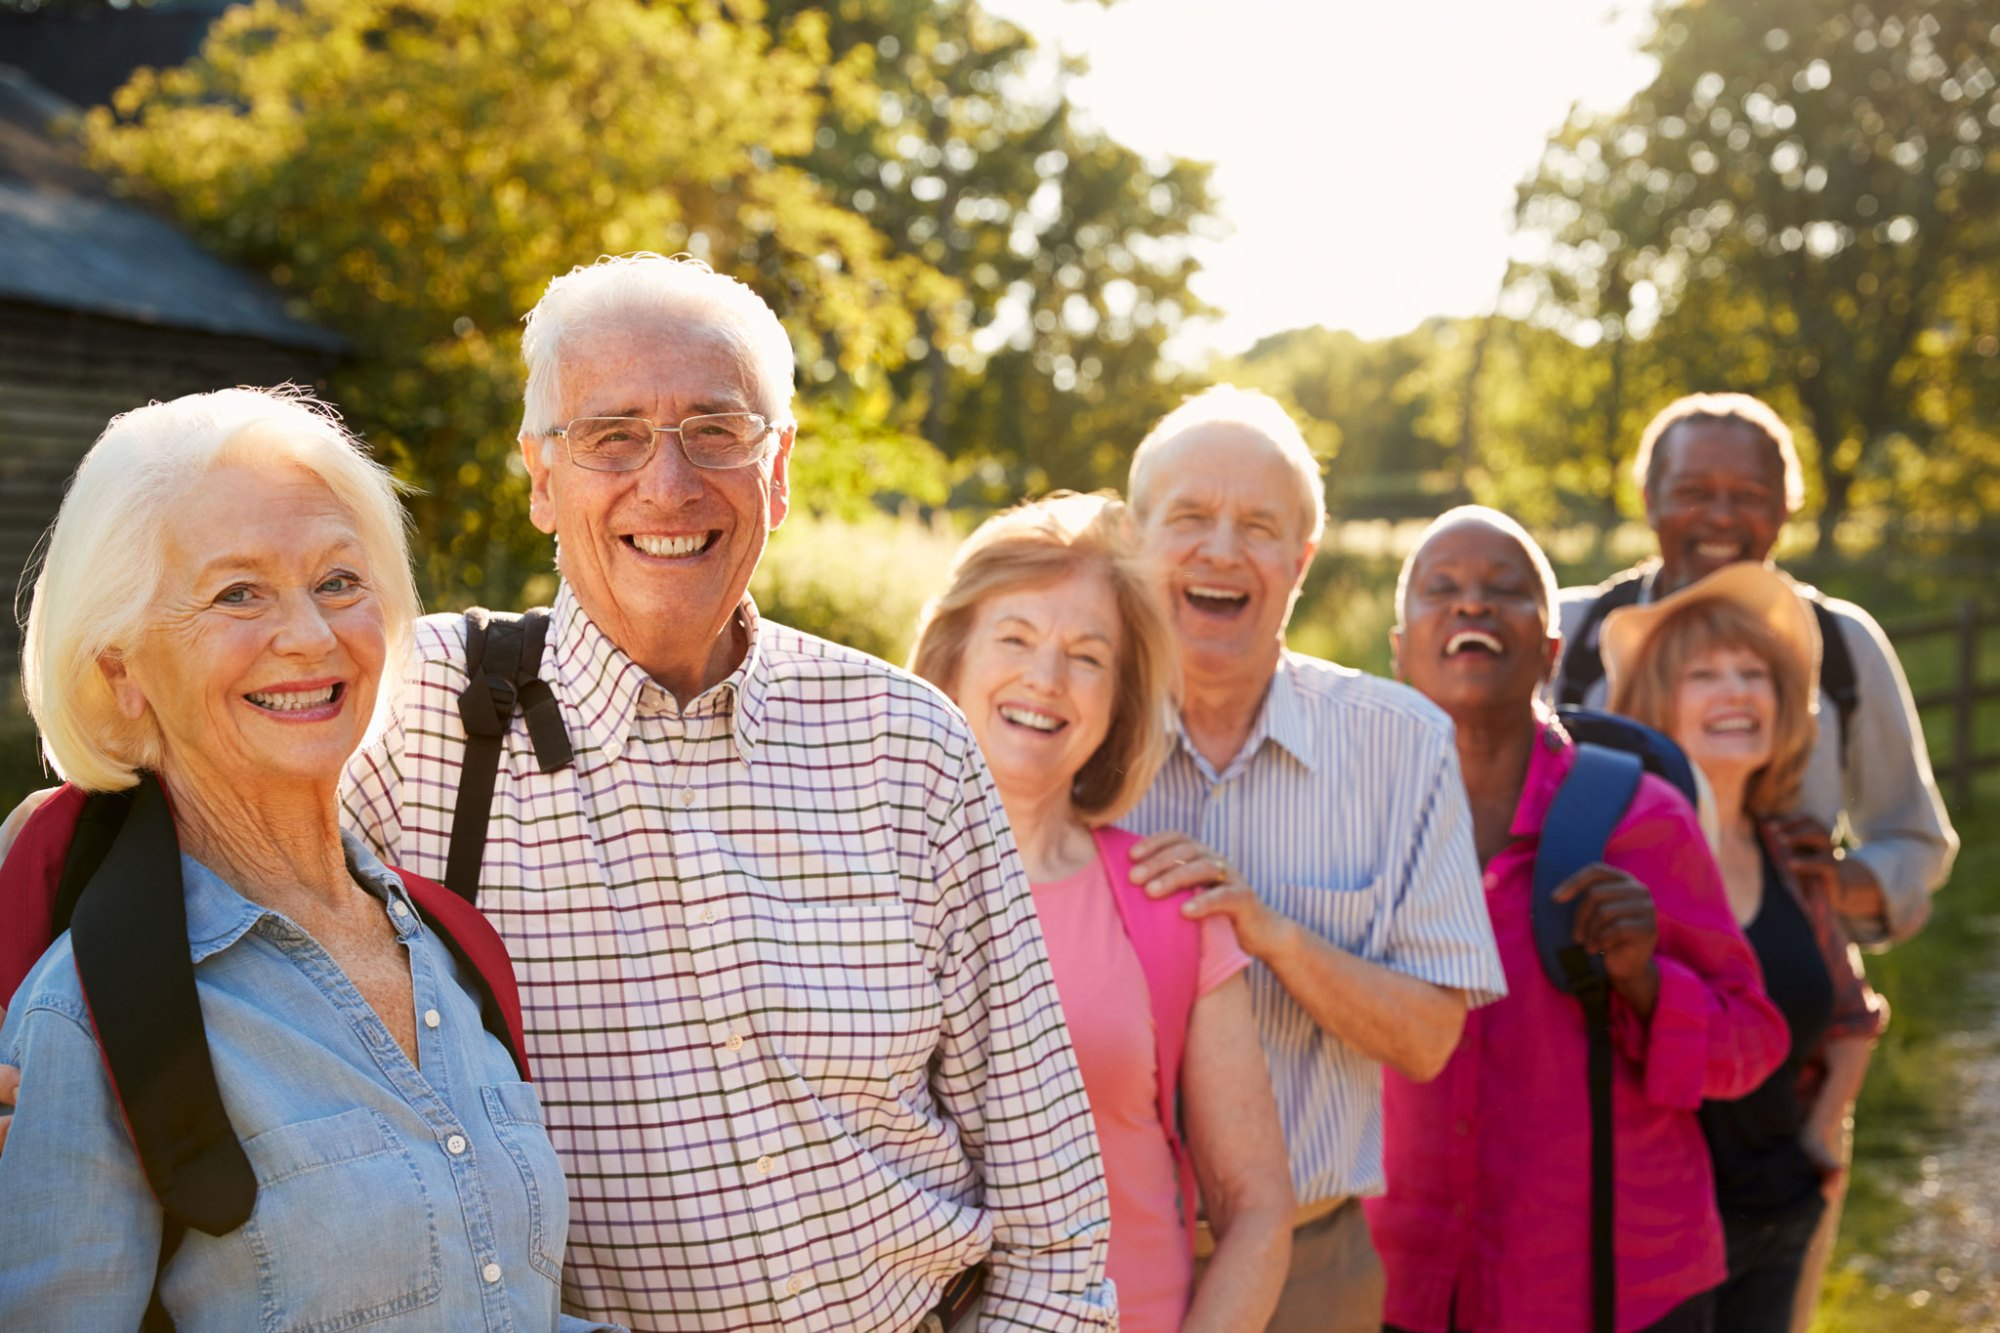 A group of happy seniors hiking outdoors